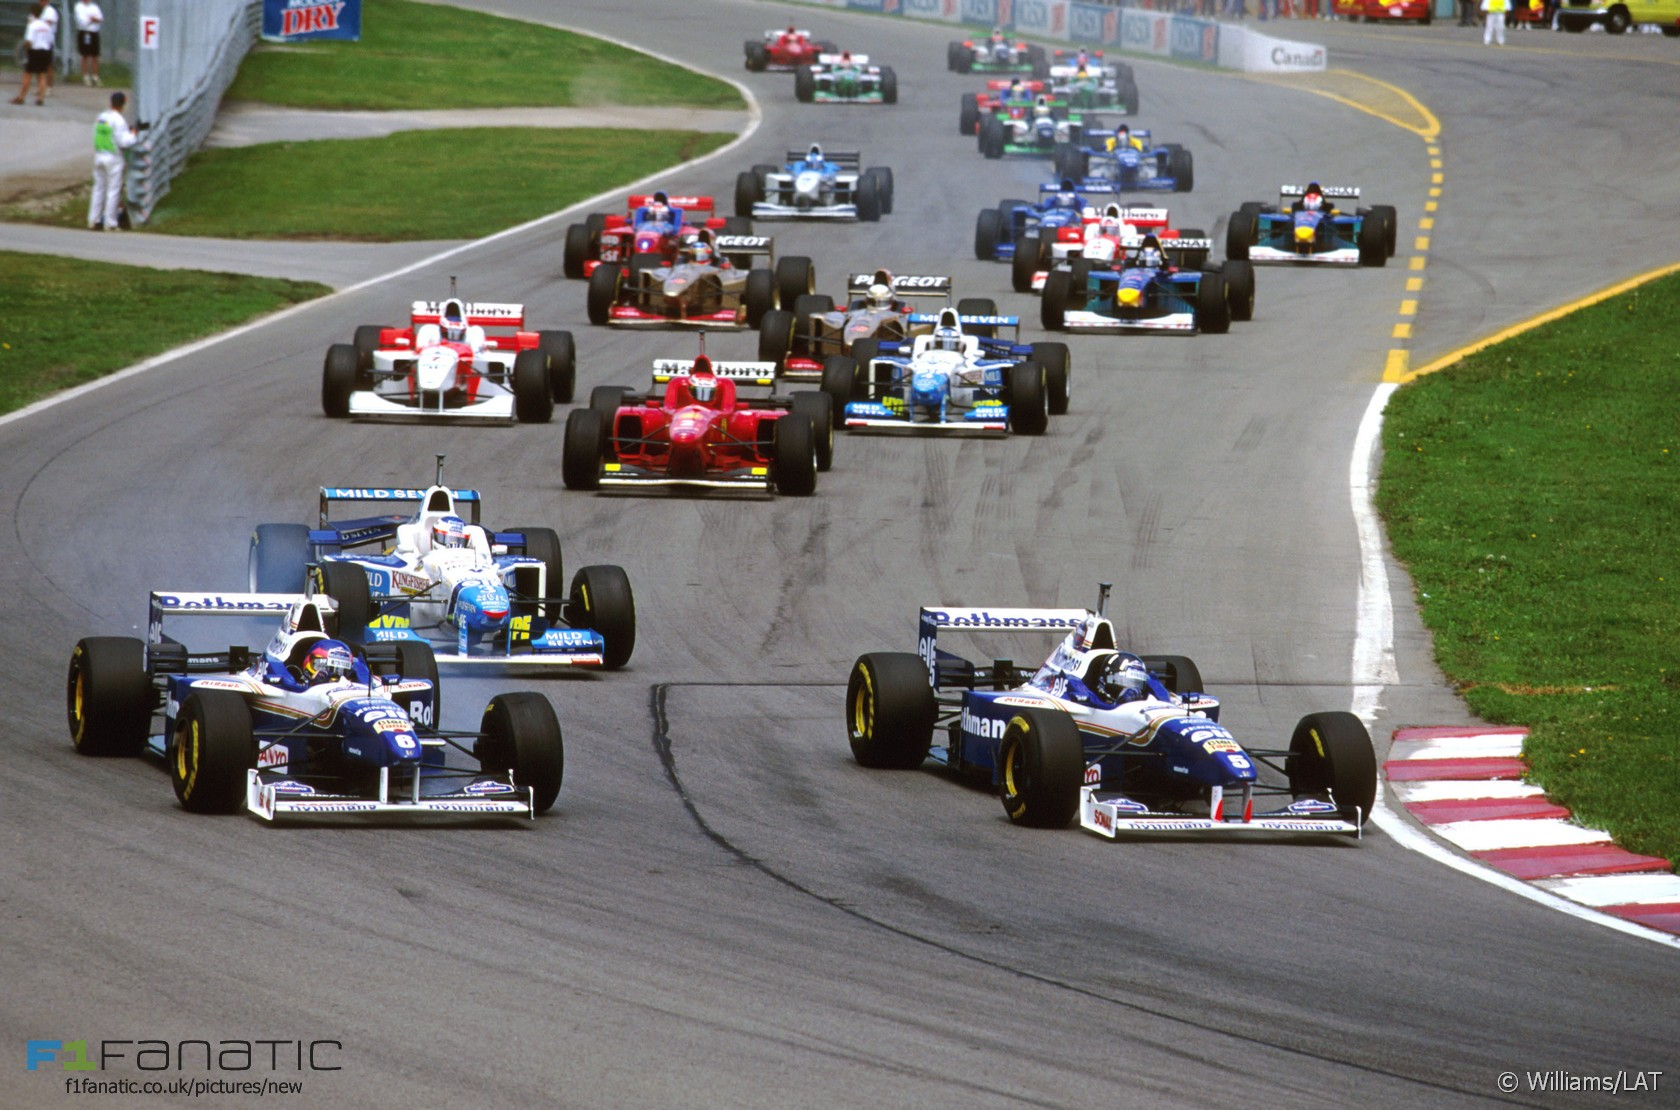 hight resolution of start canadian grand prix 1996 circuit gilles villeneuve montreal